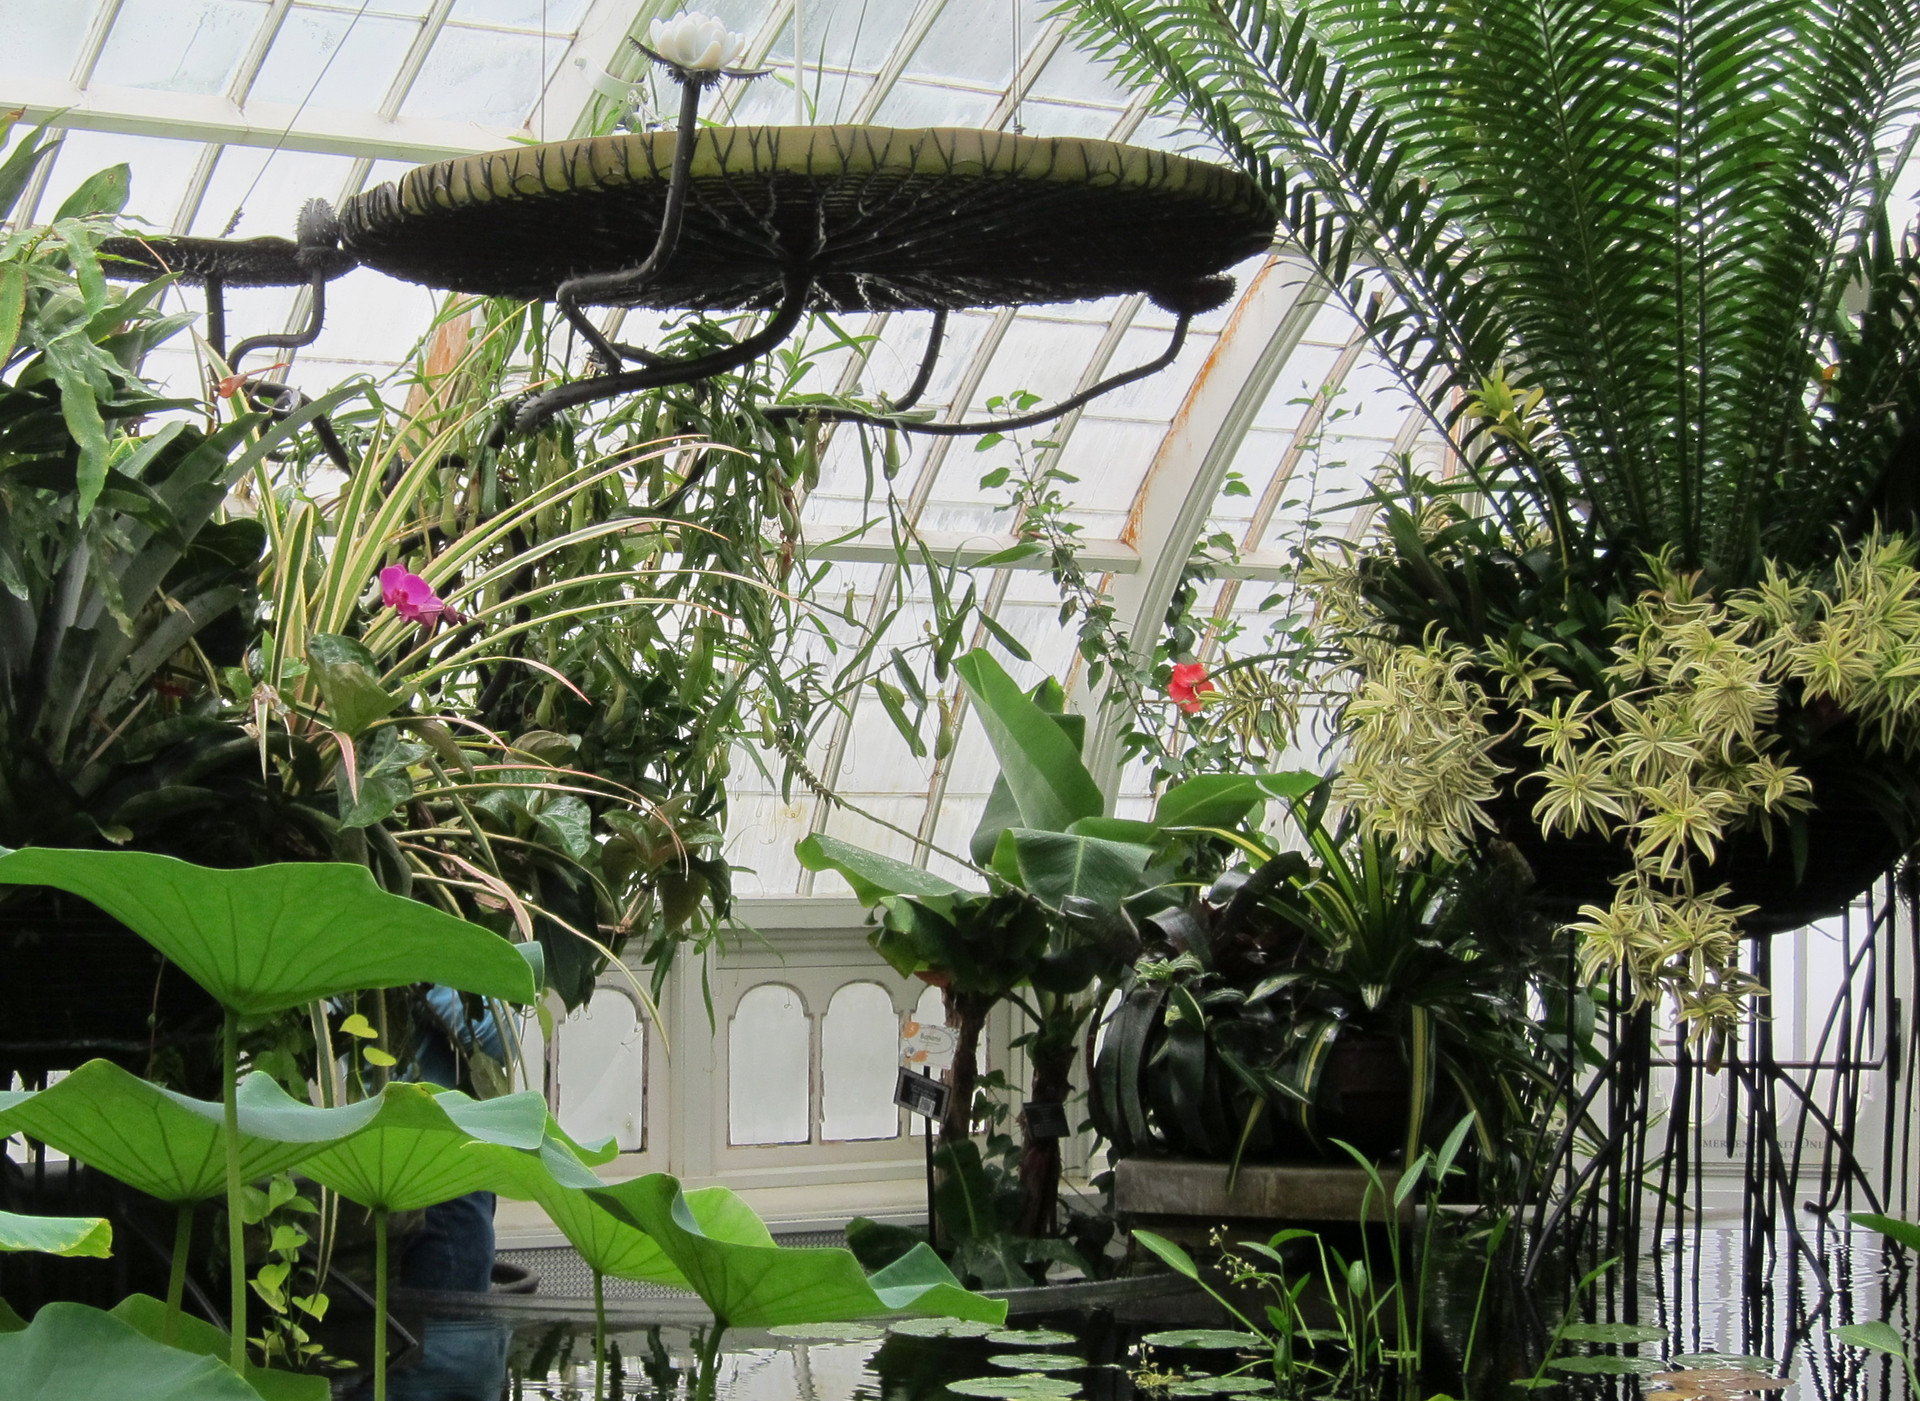 The Conservatory of Flowers, San Francisco, California